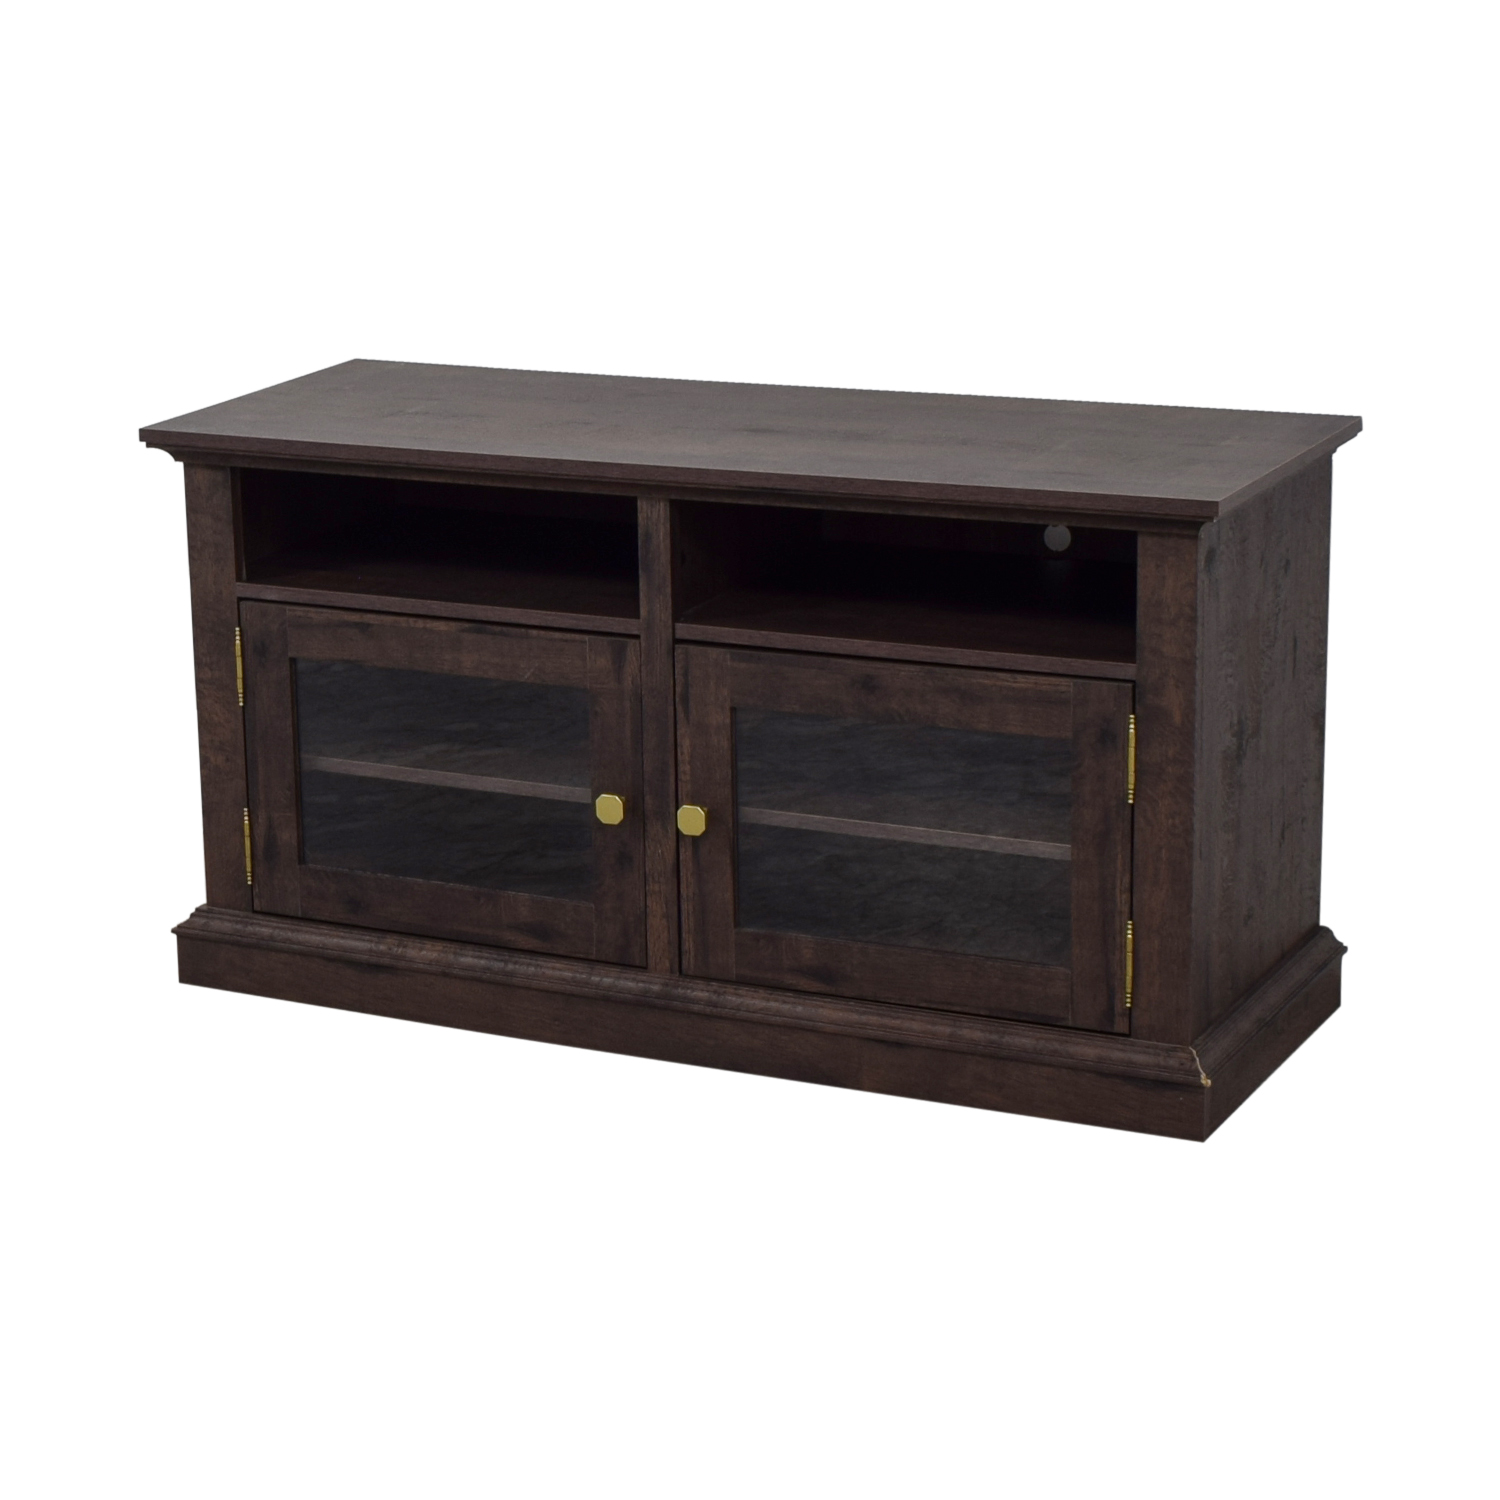 Laurel Foundry Laurel Foundry Arvilla Wood and Glass TV Stand Media Units